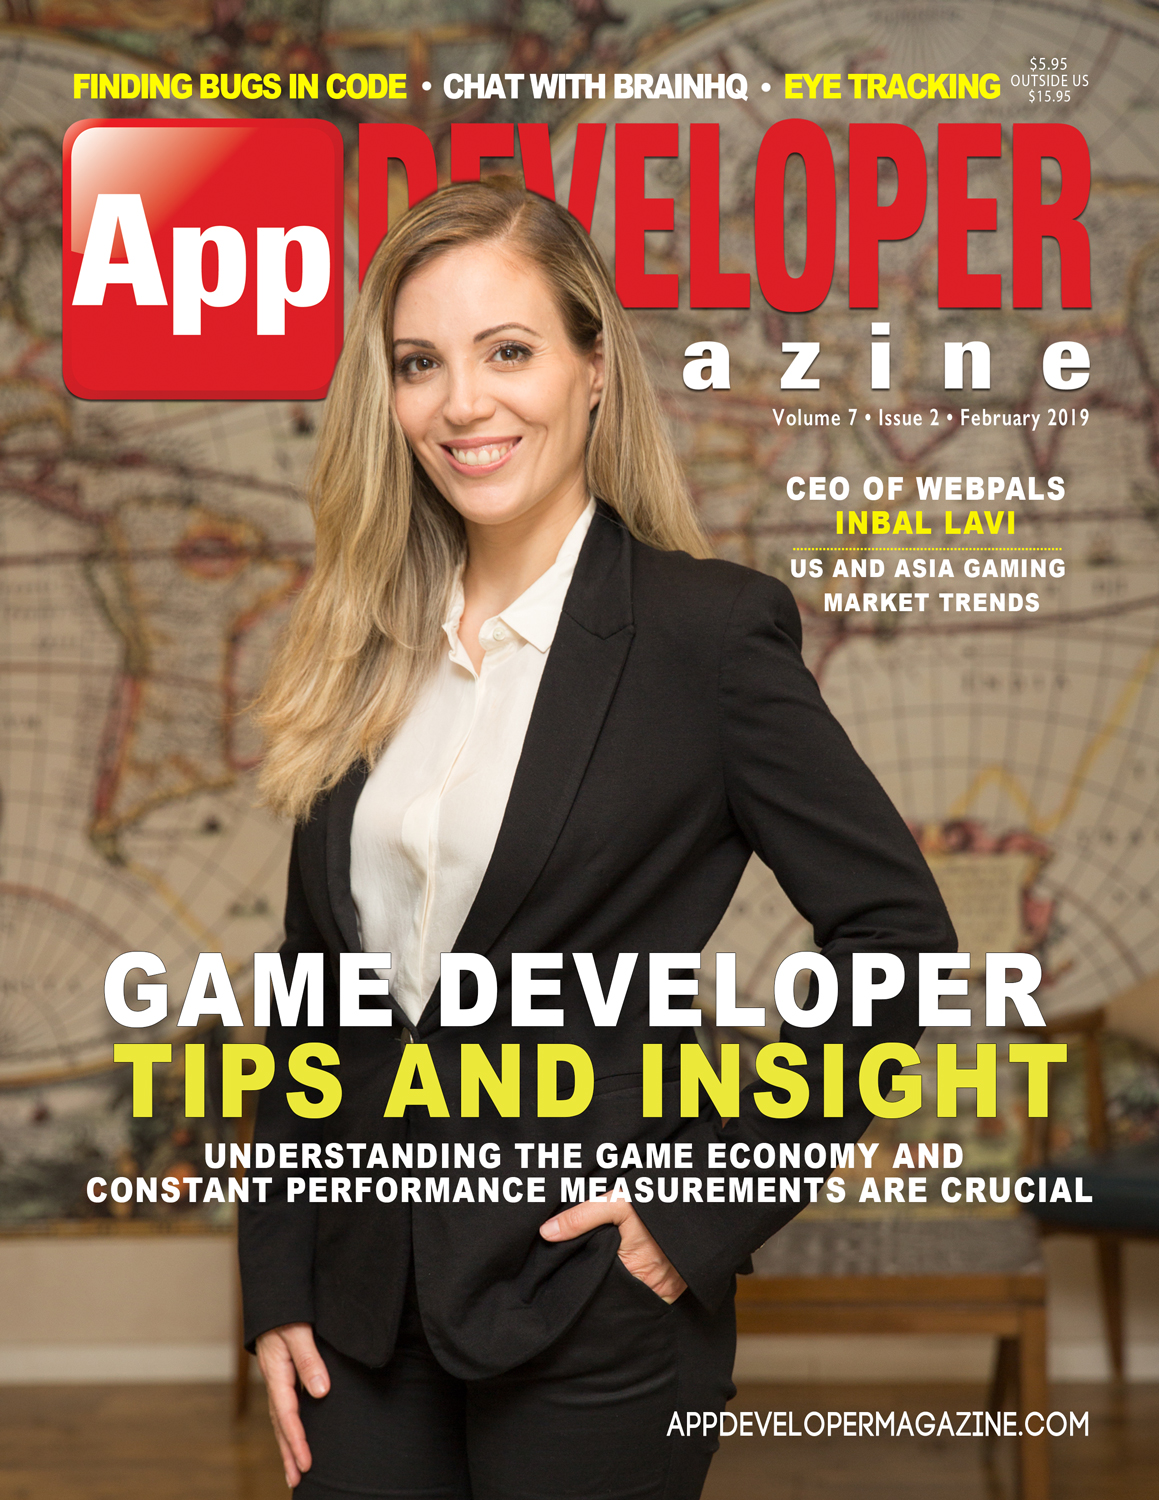 App Developer Magazine February 2019 Cover